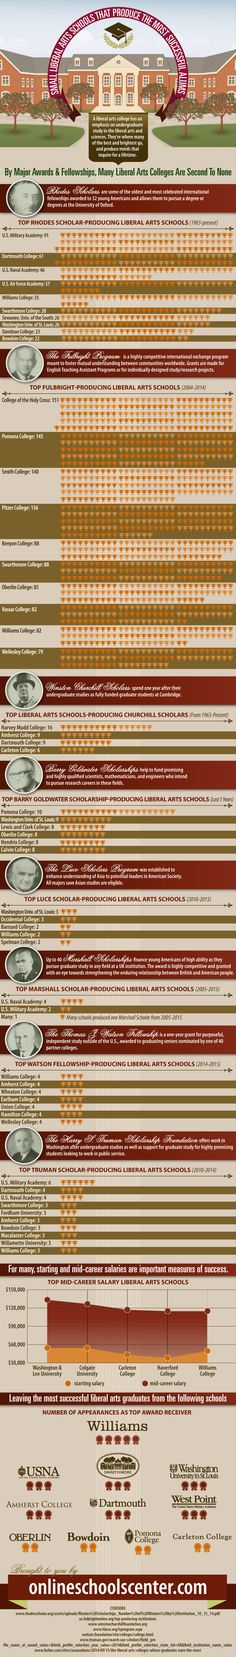 Infographic Of The Day: 10 Small Liberal Arts Schools That Produce The Most Successful Alums